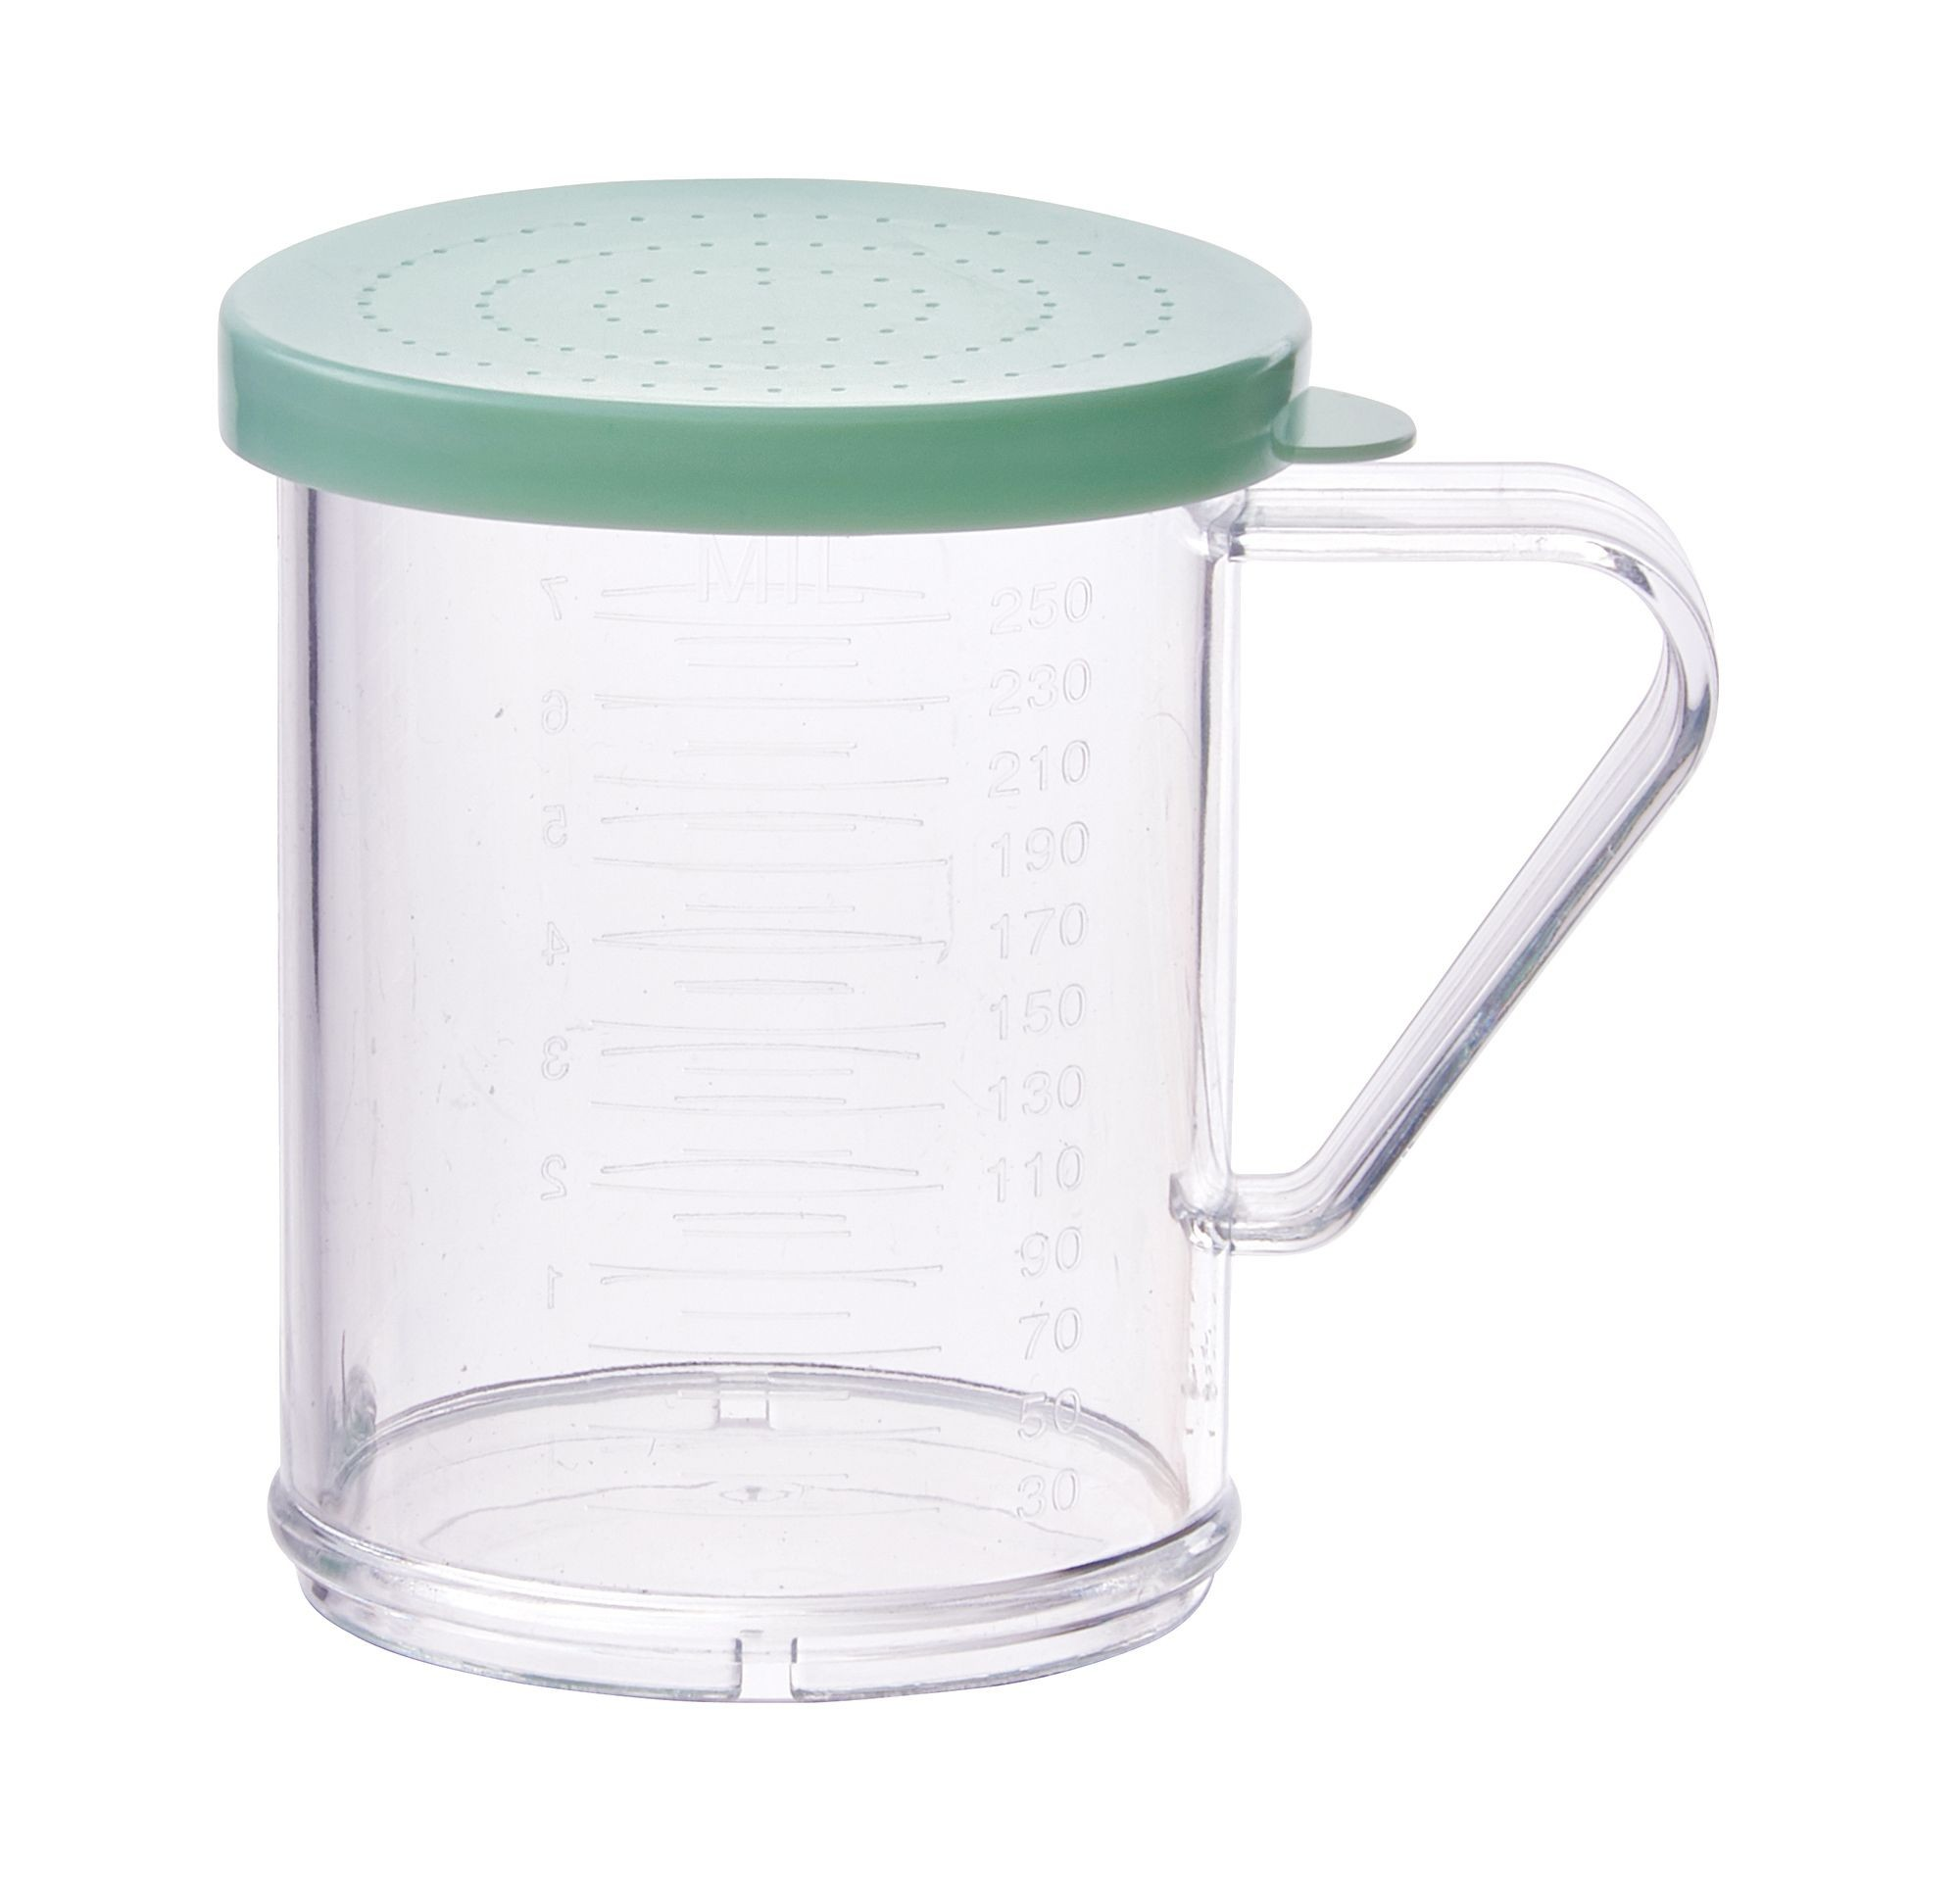 Winco PDG-10G 10 oz. Polycarbonate Dredge with Green Snap-On Lid